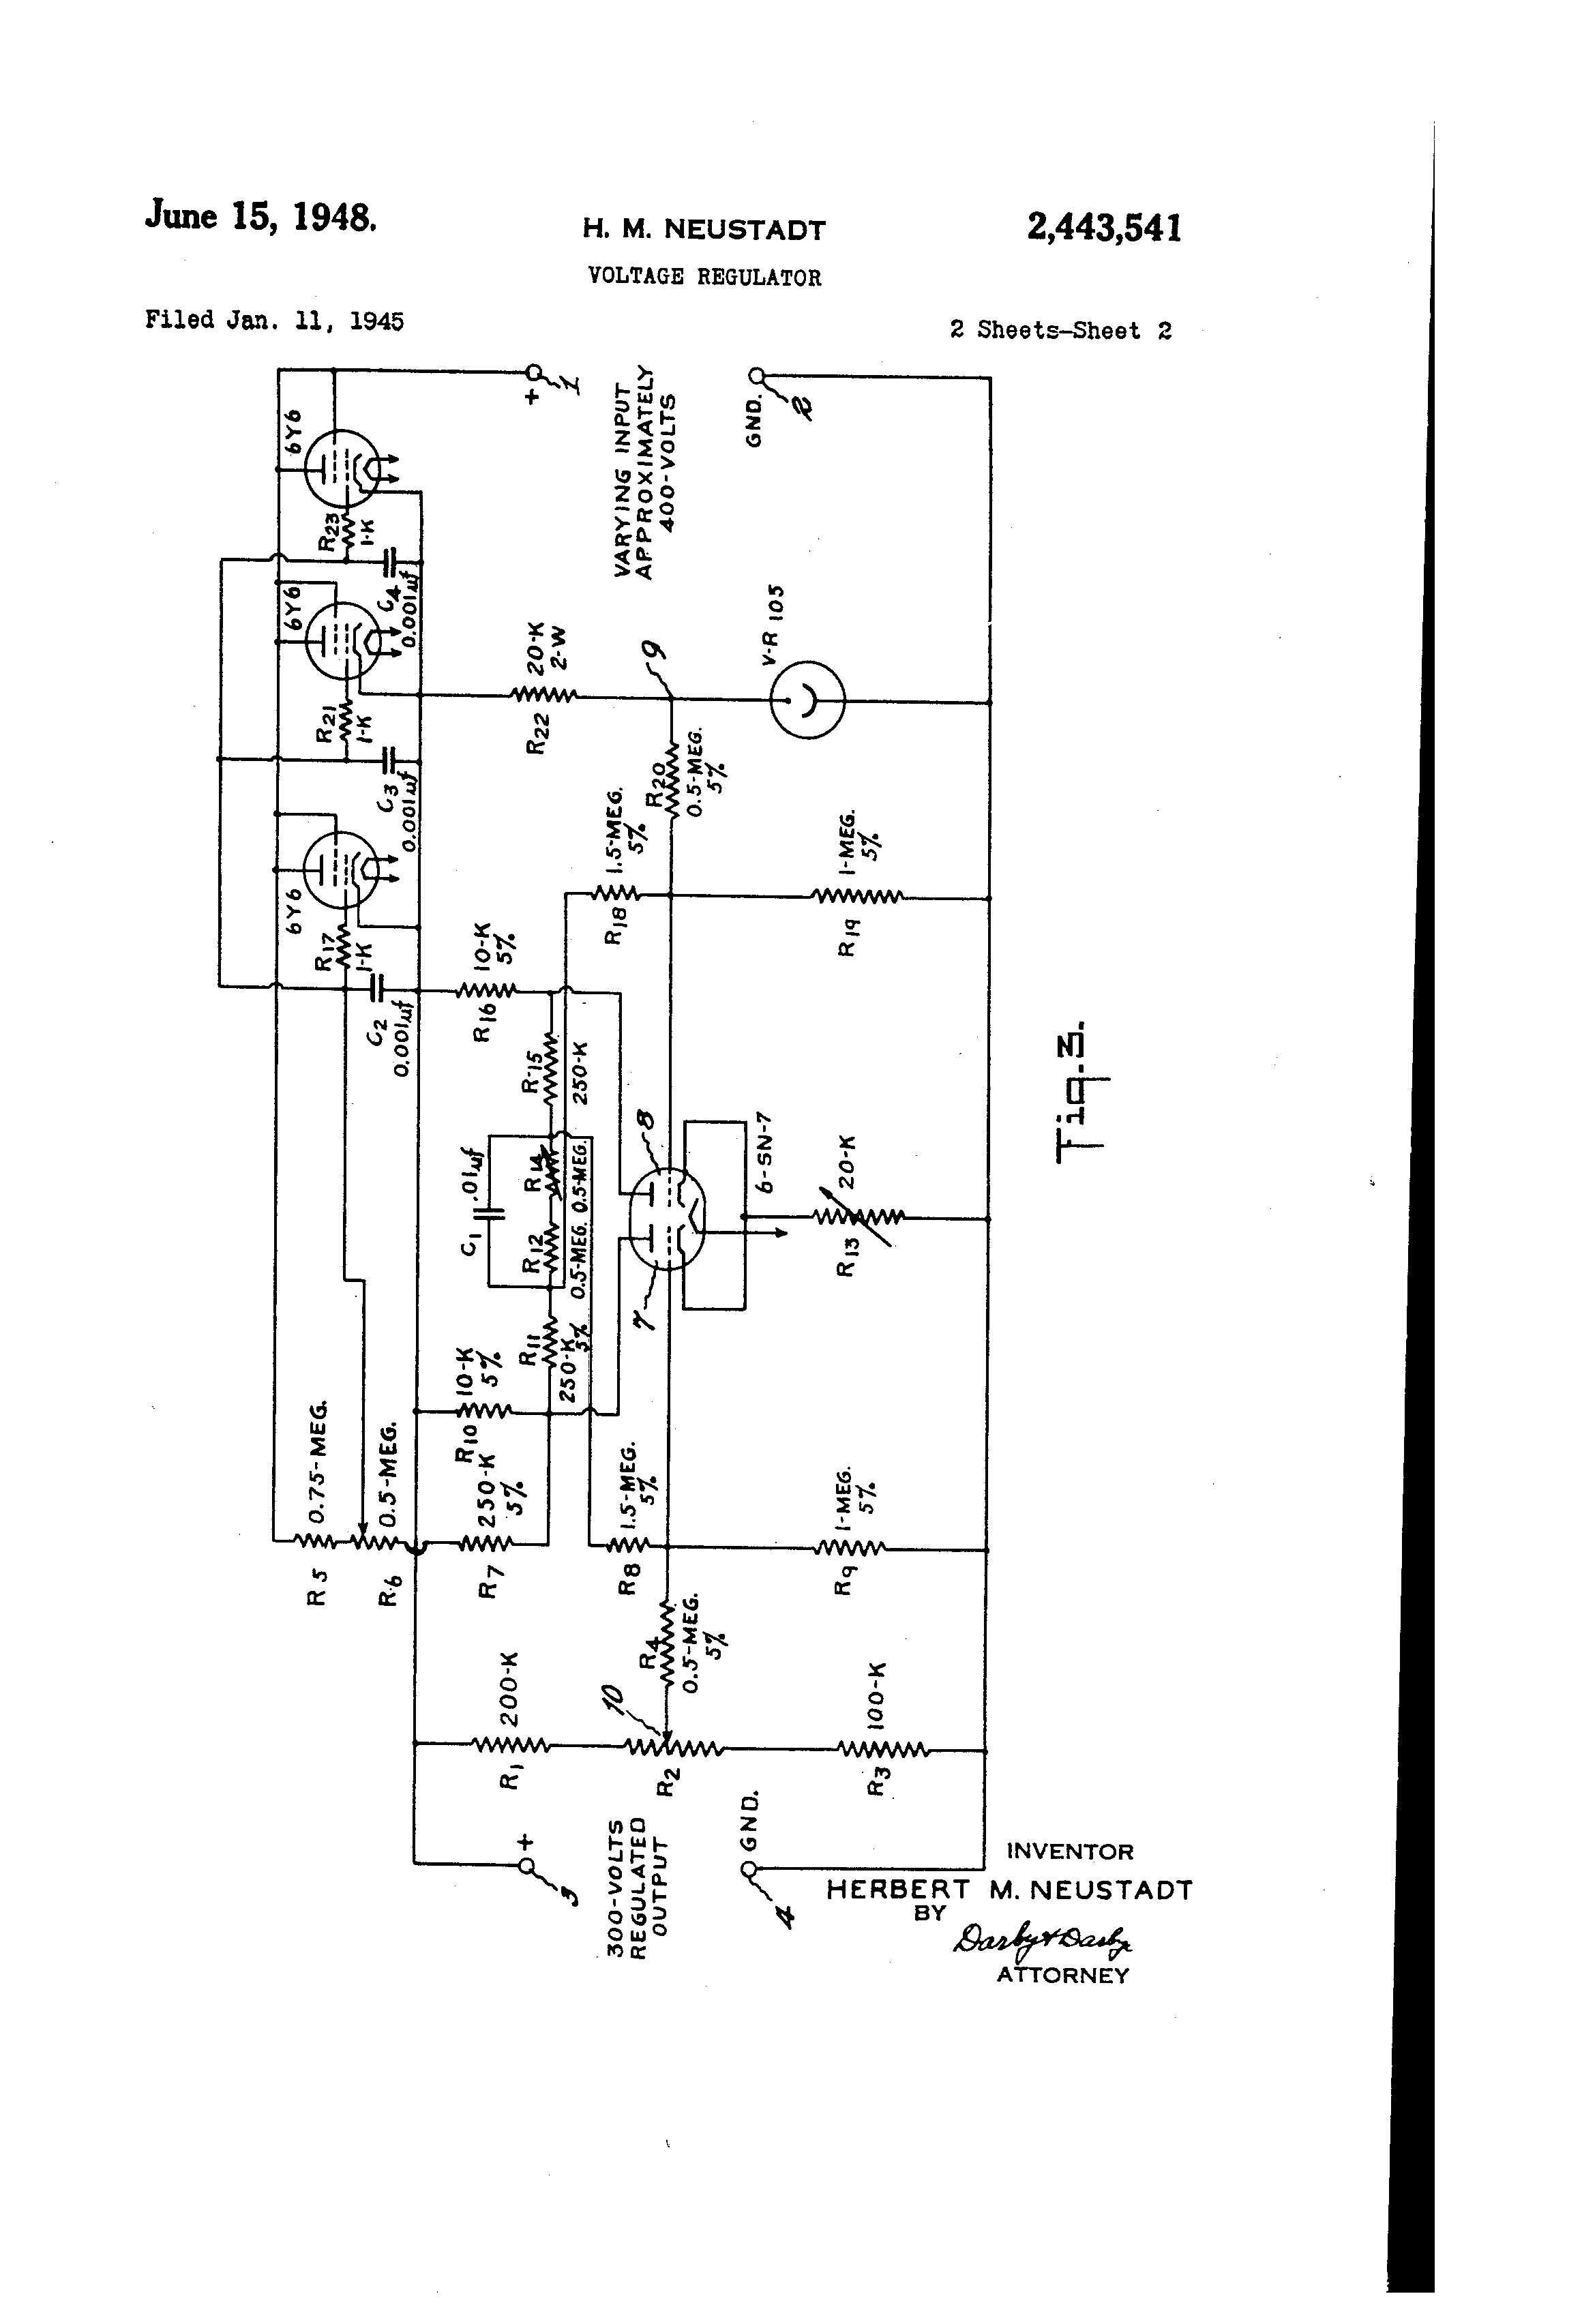 Oregon Electronics A3a Regulated Power Supply Schematic On Dc Tube Filament The 6y6 Was Also Used In Neustadt Voltage Patent